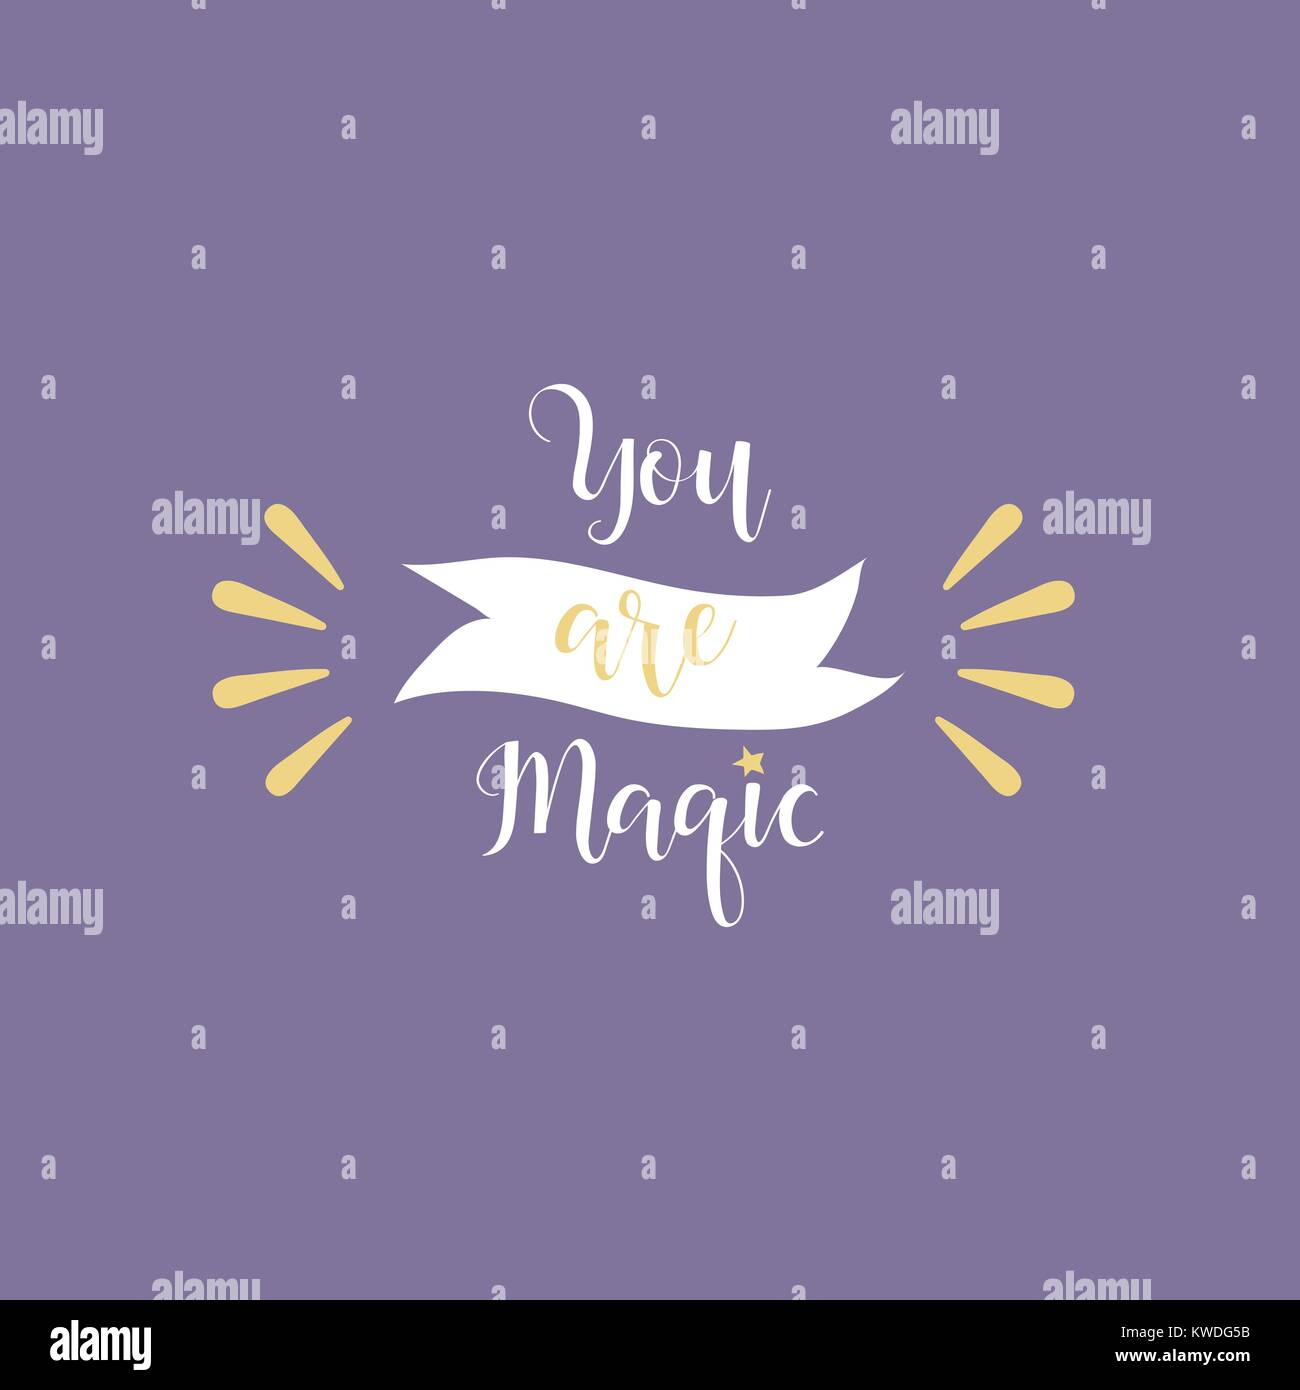 You Are Magic Calligraphy Inspiration Graphic Design Typography